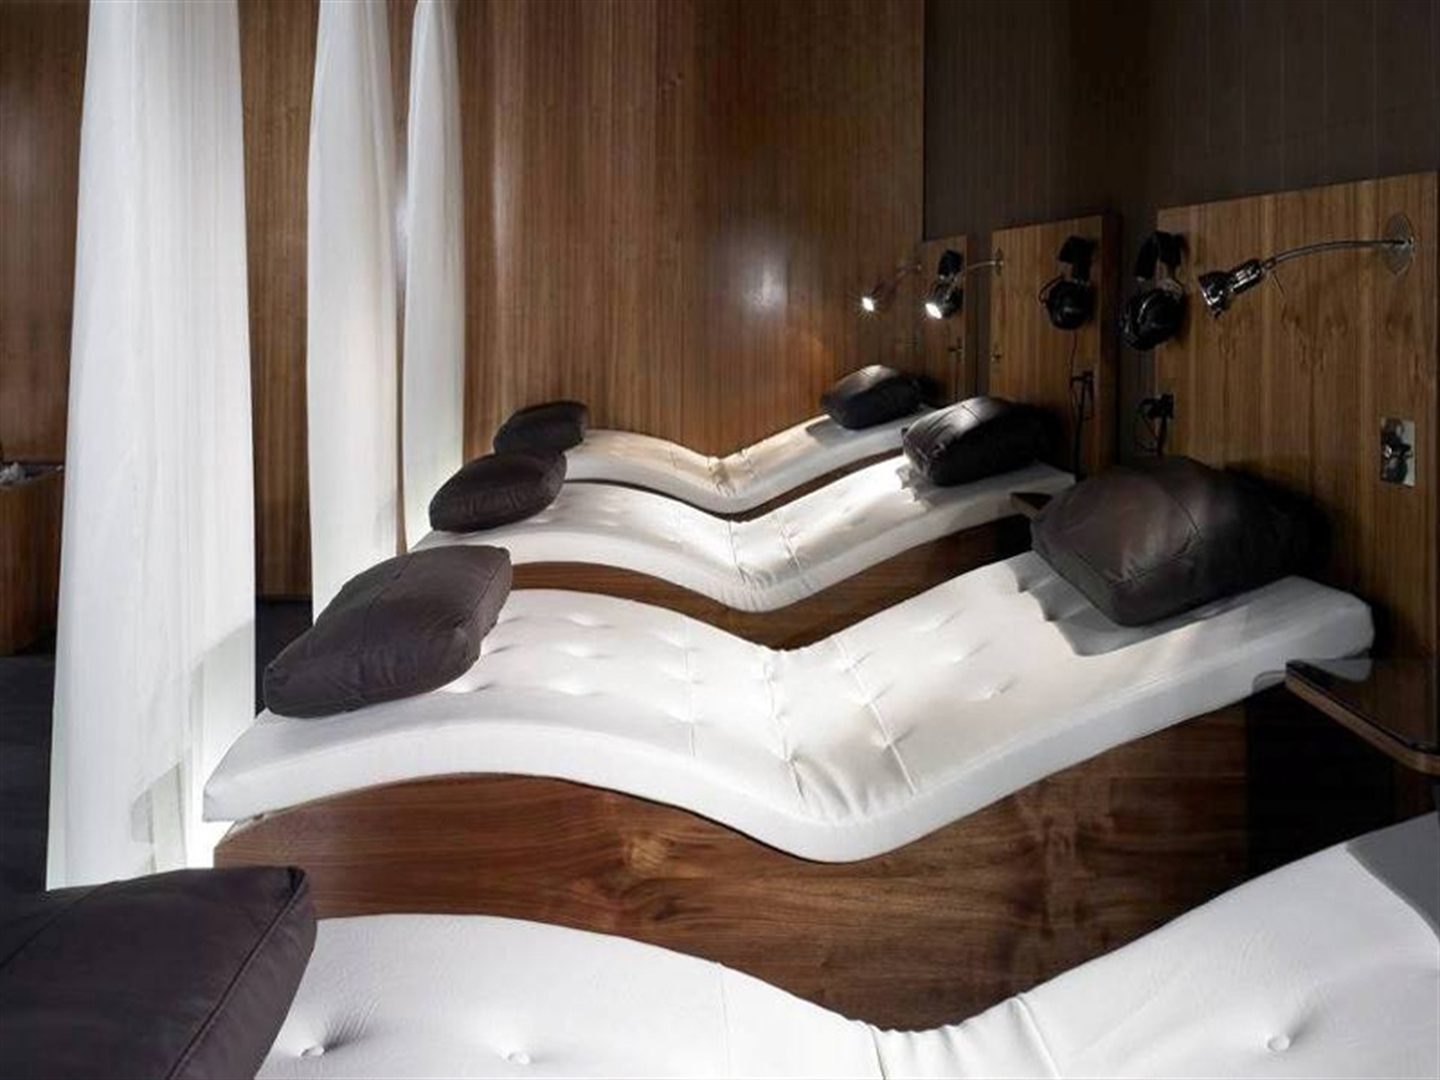 SpaSeekers • Spa Days and Breaks near Ware, Hertfordshire